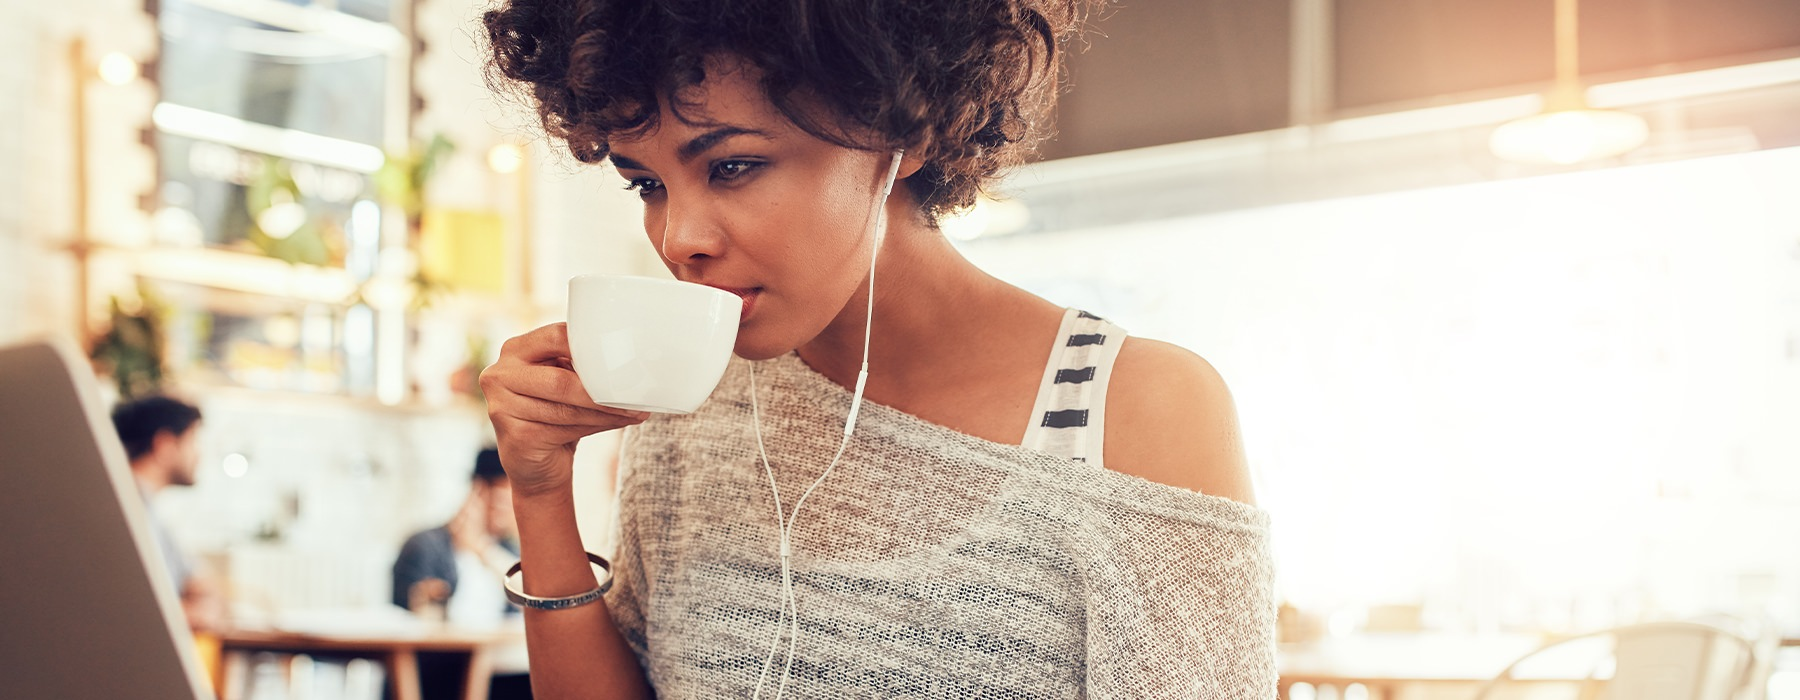 Women sitting in a cafe on her computer drinking Coffee